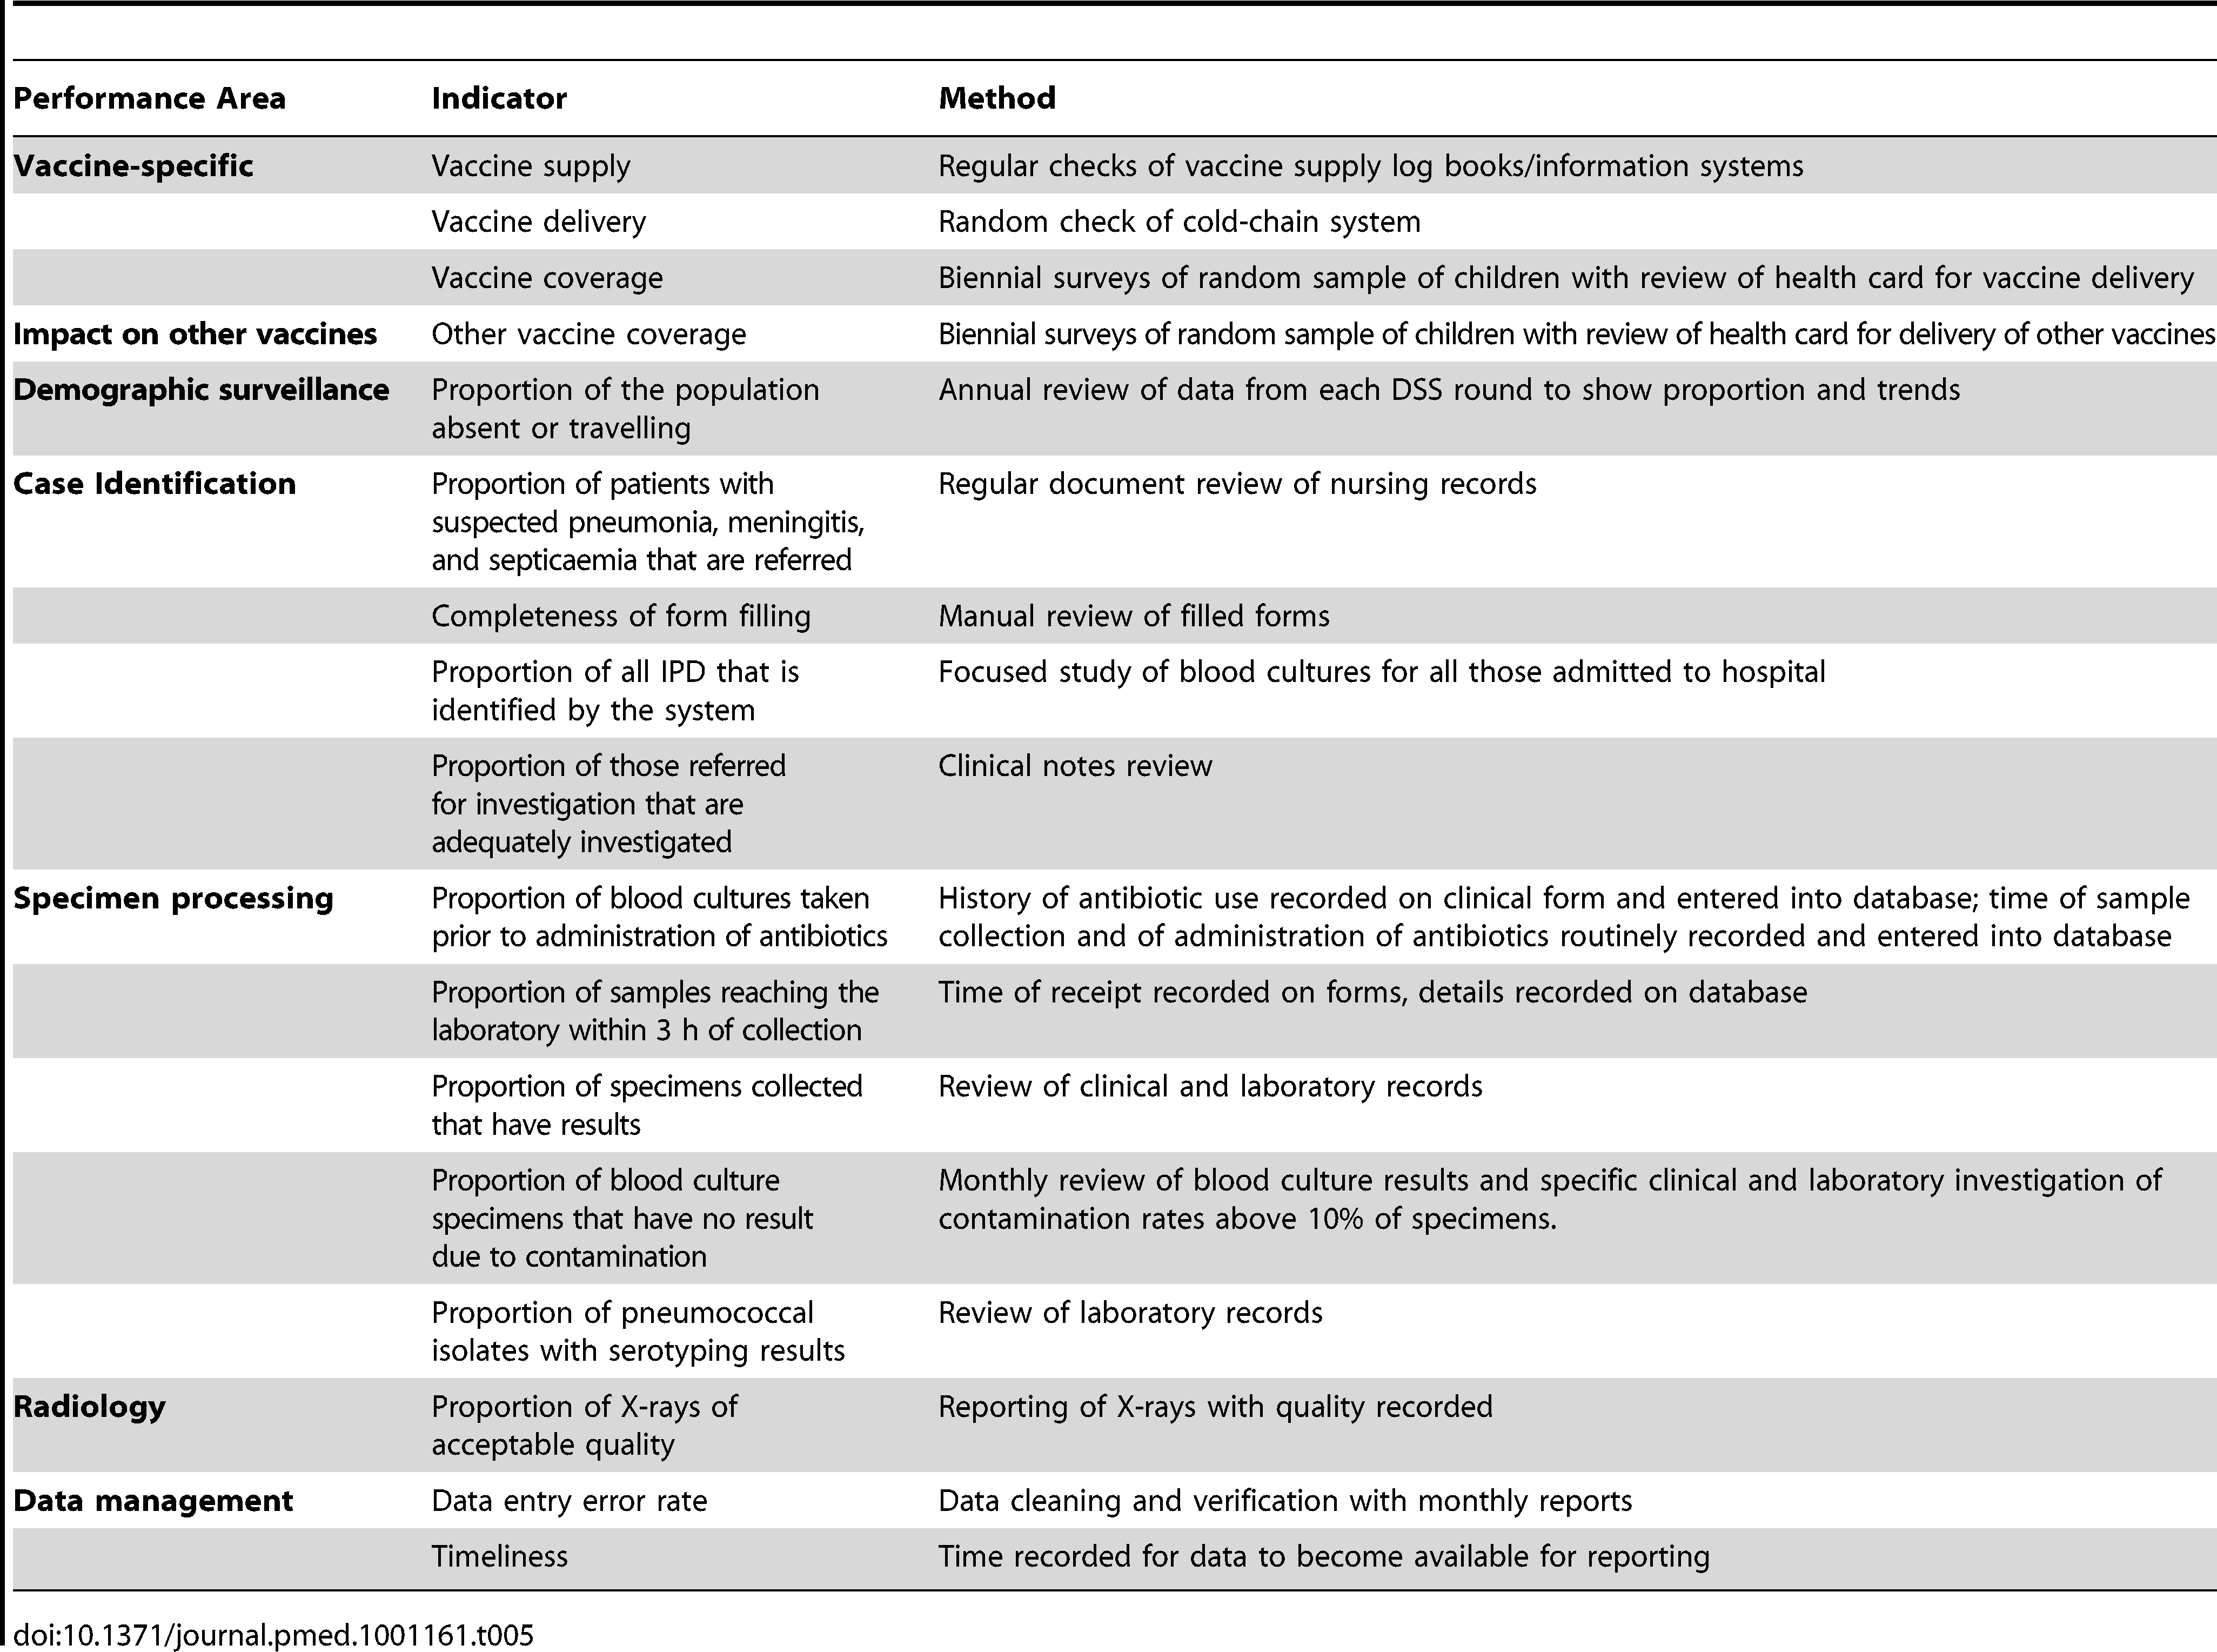 Performance indicators for the Gambian pneumococcal surveillance system and the methods for measuring them.